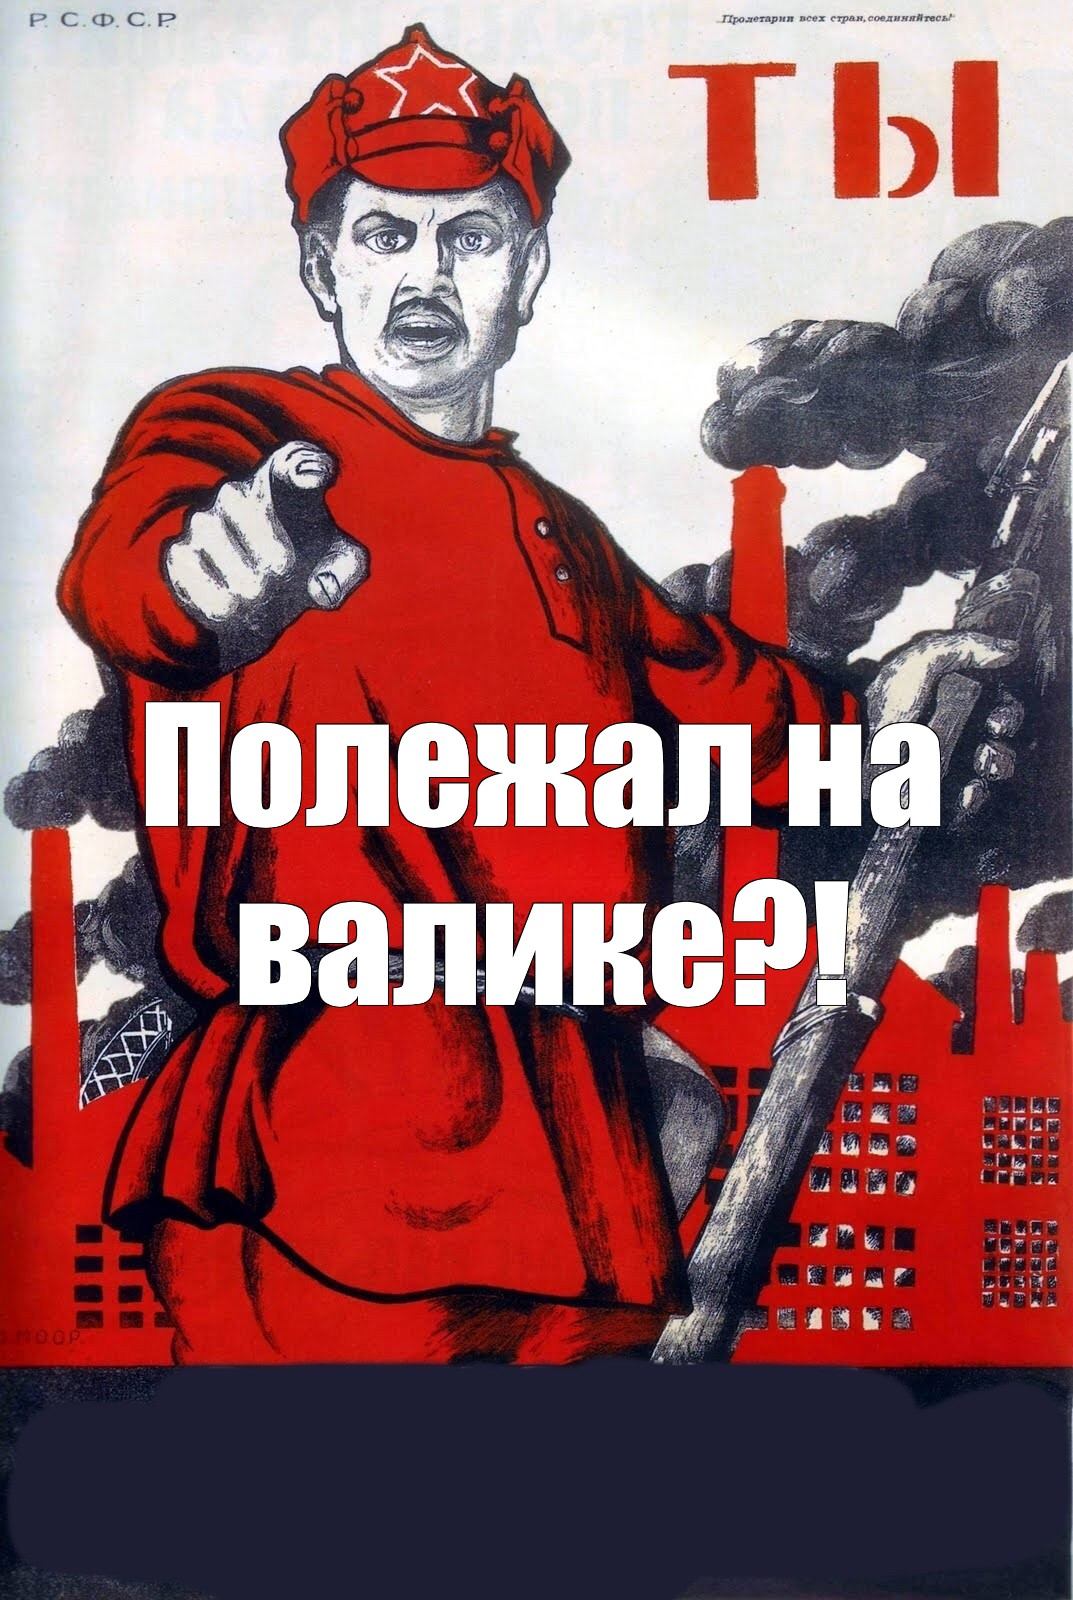 Create meme: Soviet poster and you volunteered, Moore you volunteered poster, poster have you volunteered photos